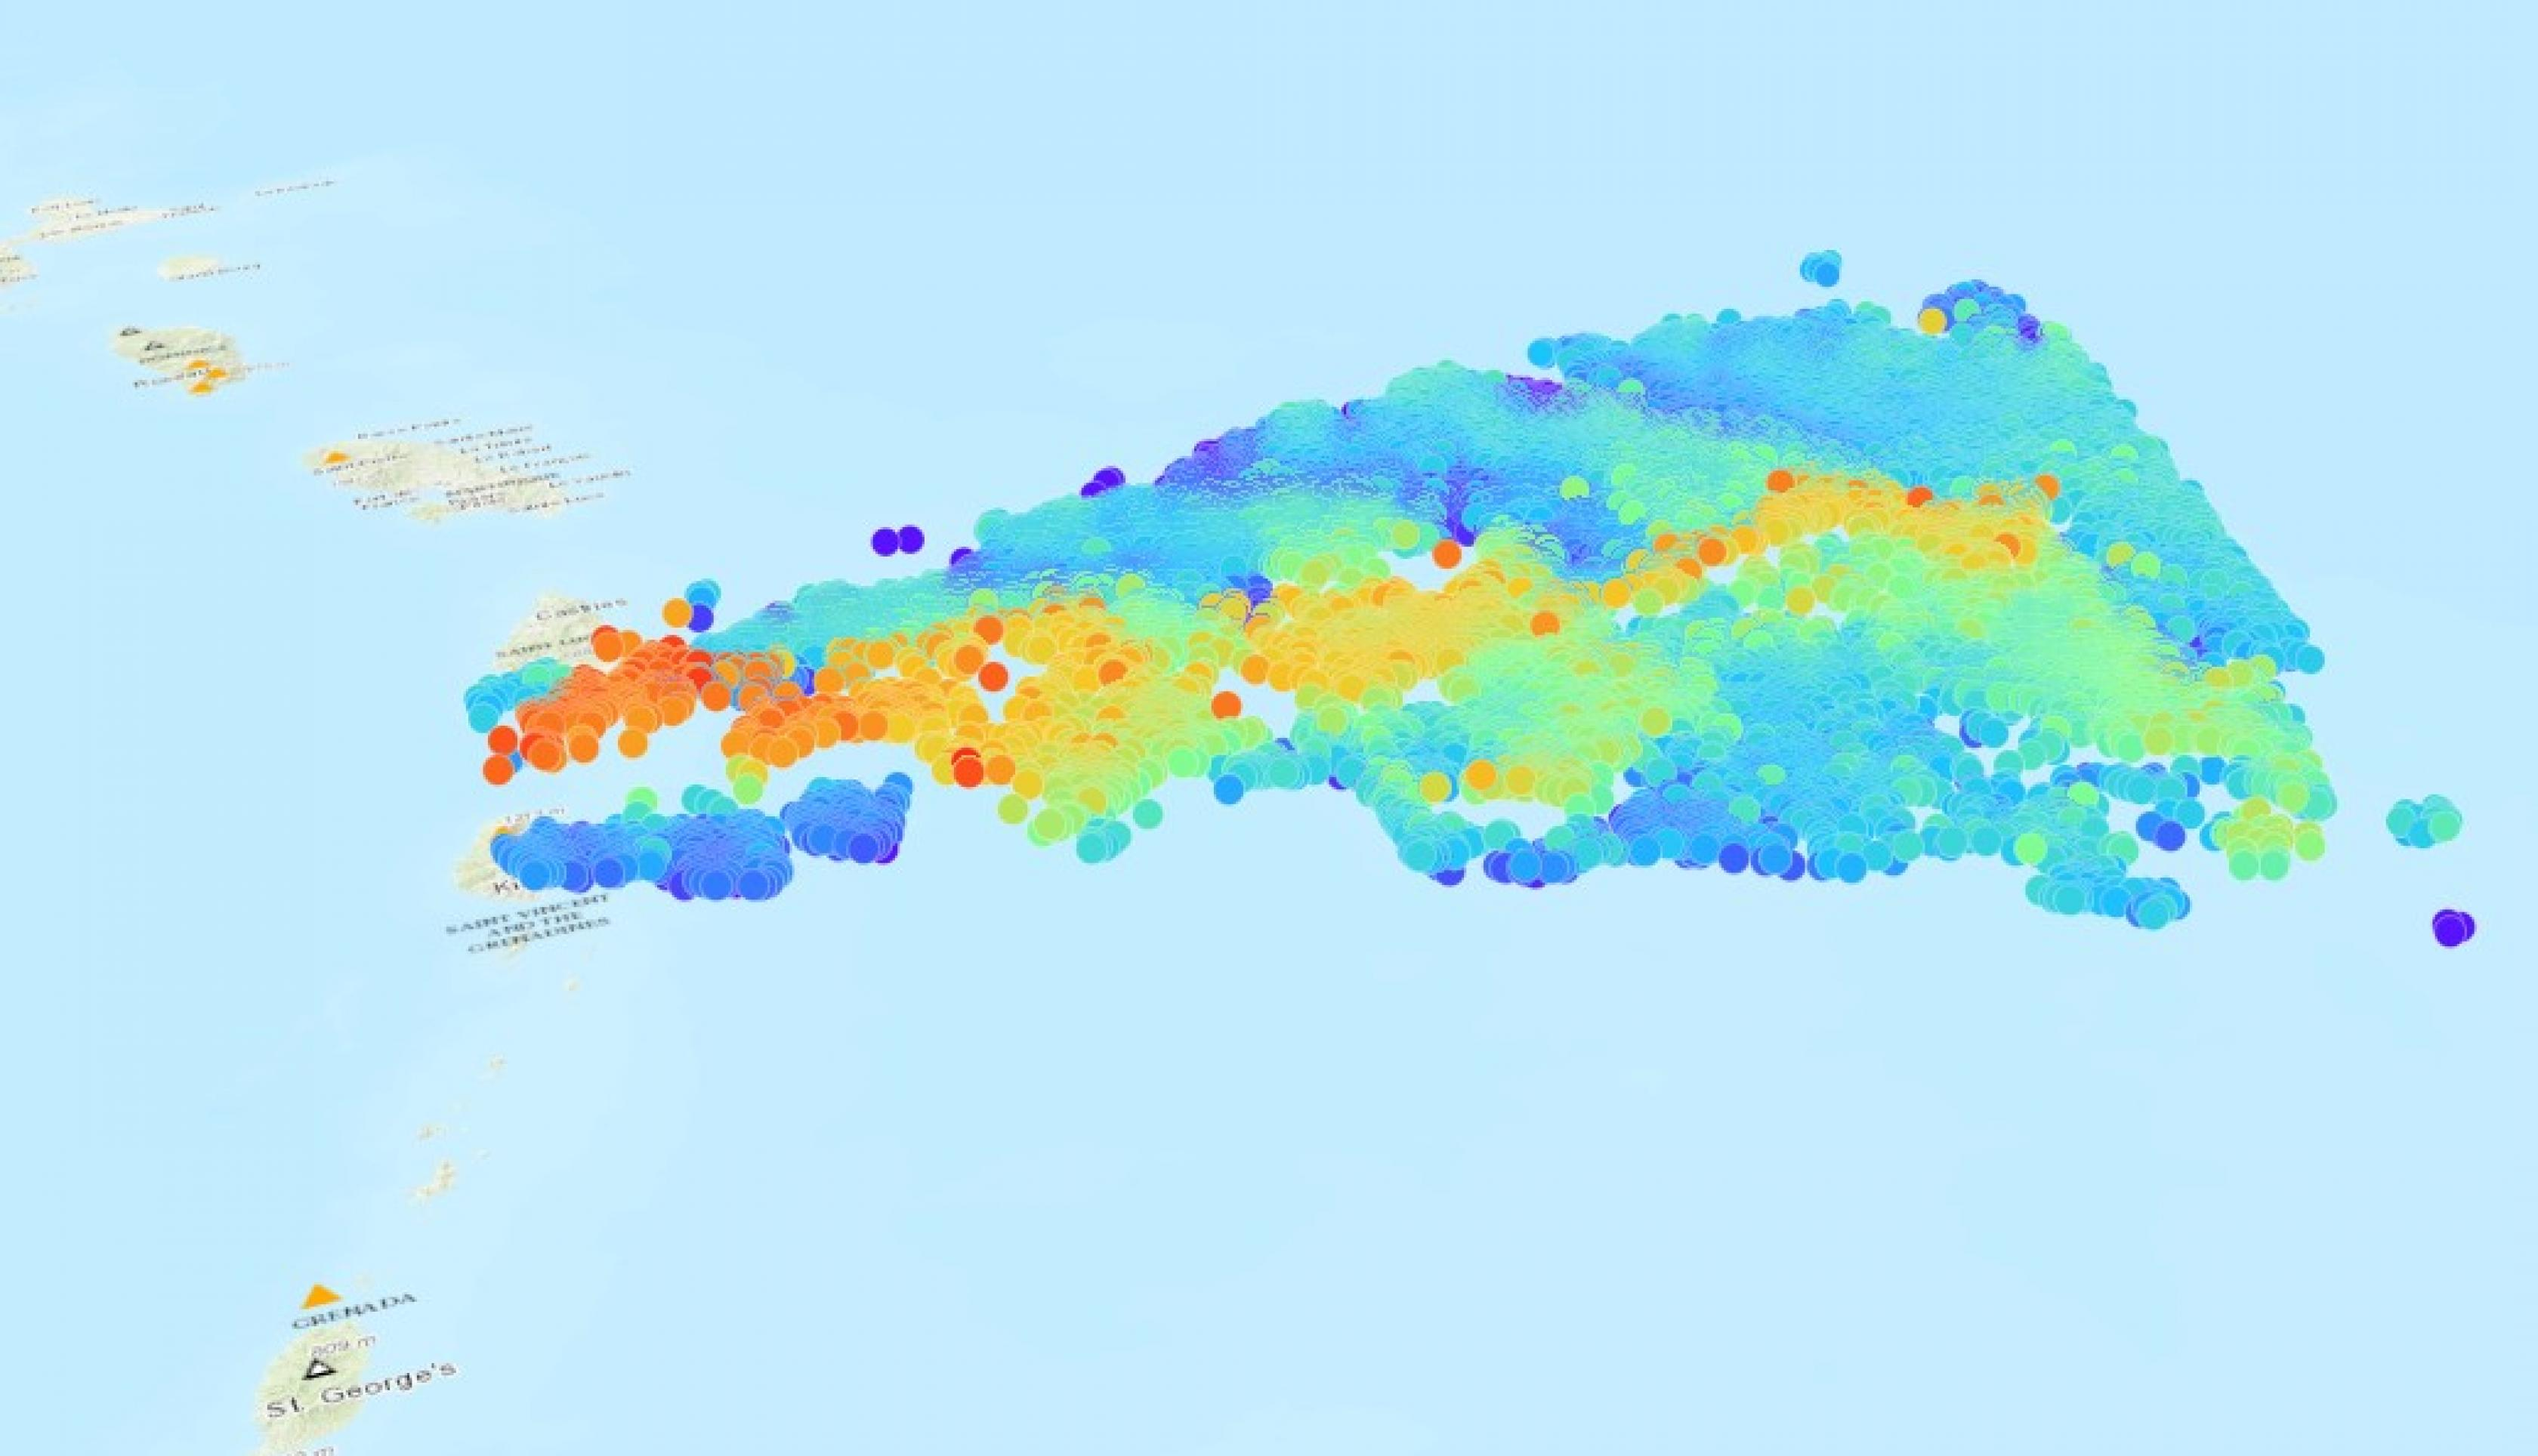 3D MISR data from the La Soufriere eruption